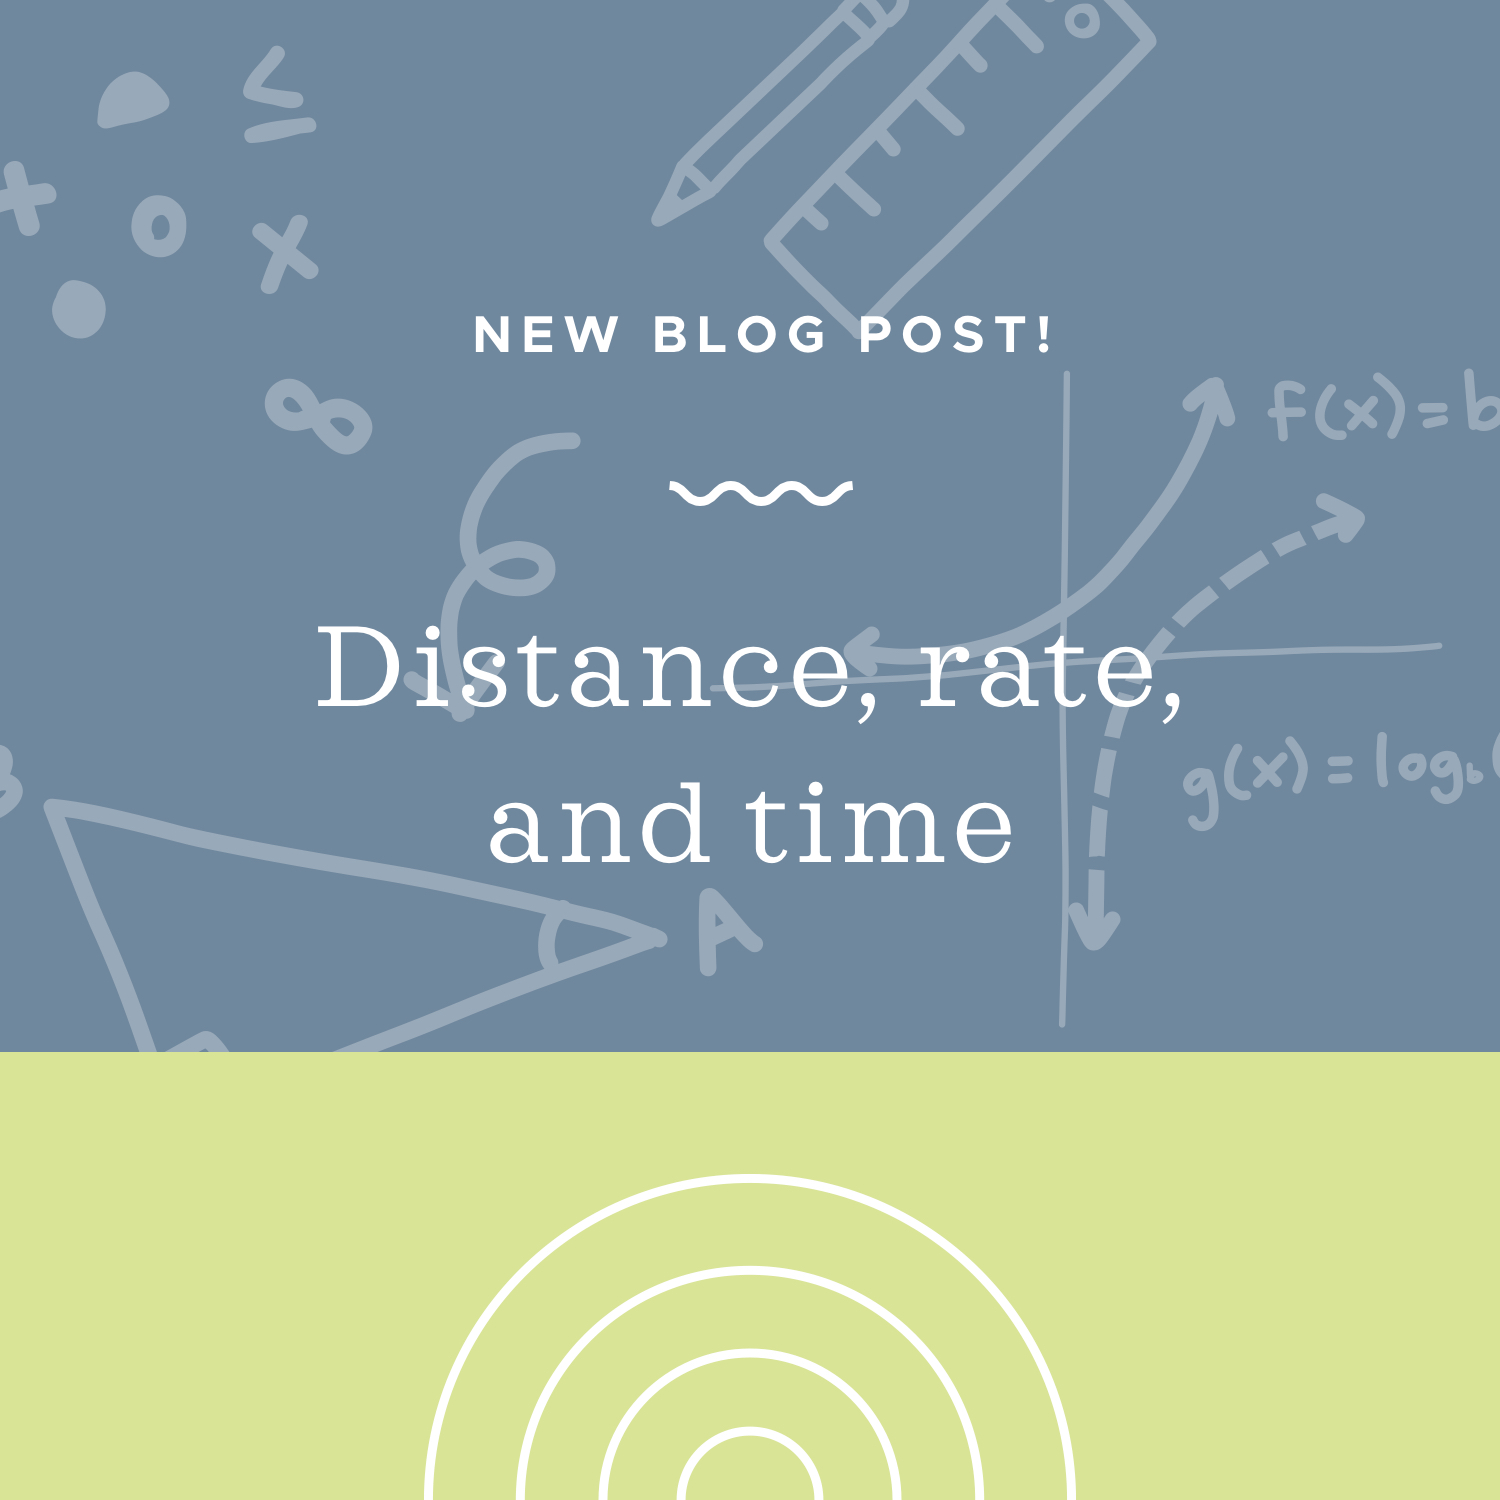 Distance, rate, and time blog post.jpeg